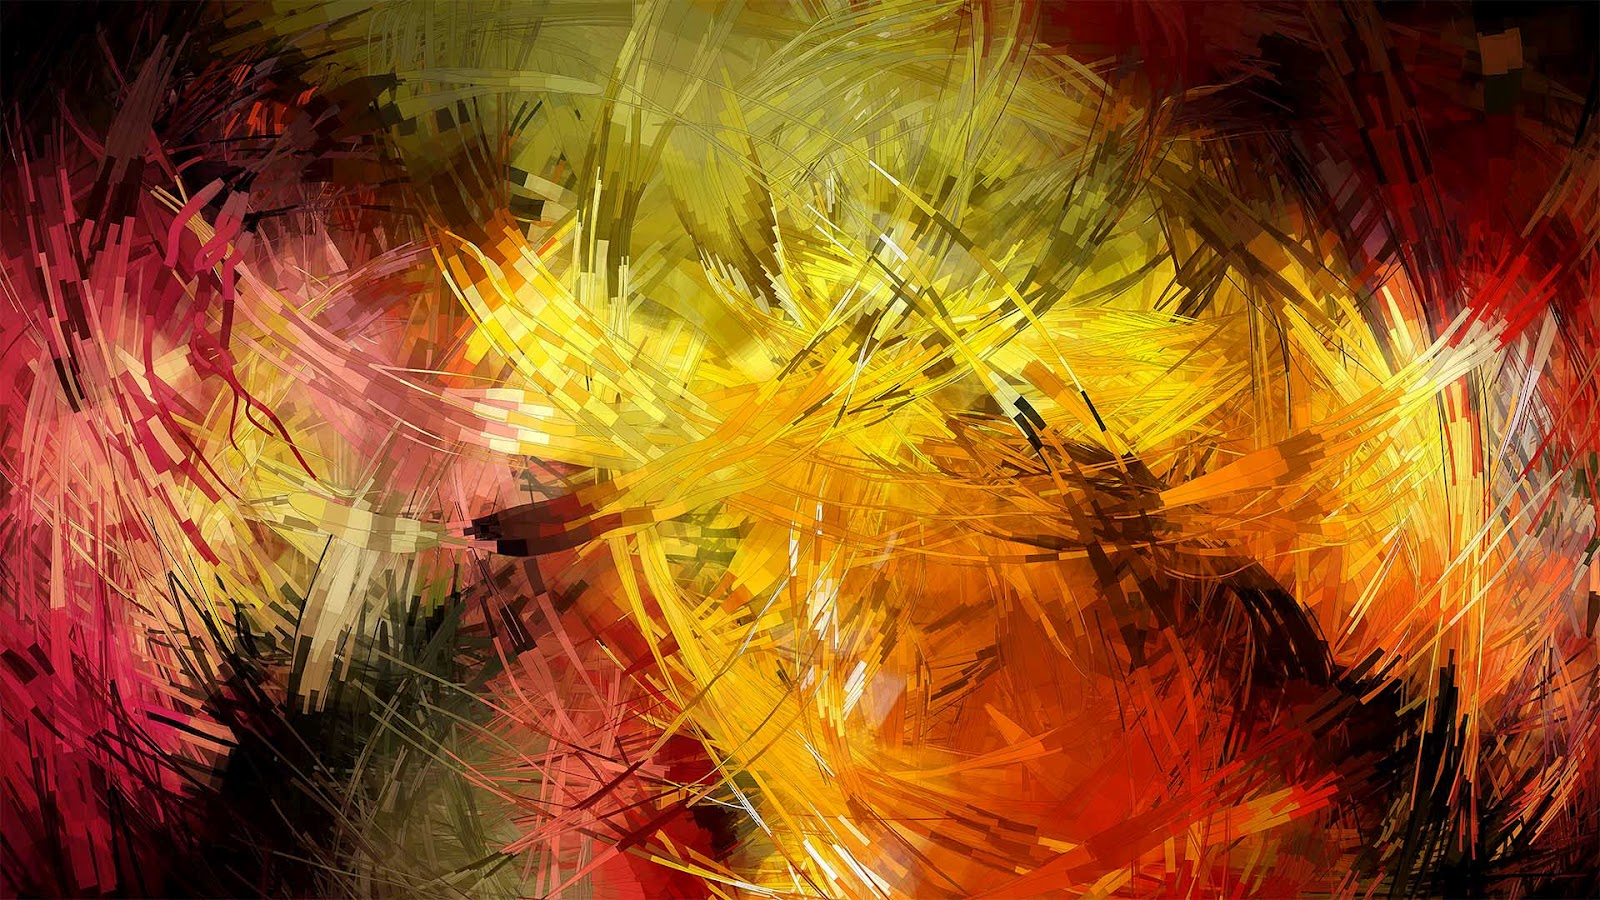 Picture Abstract Art In Hd Painting Free: Moderne Achtergronden